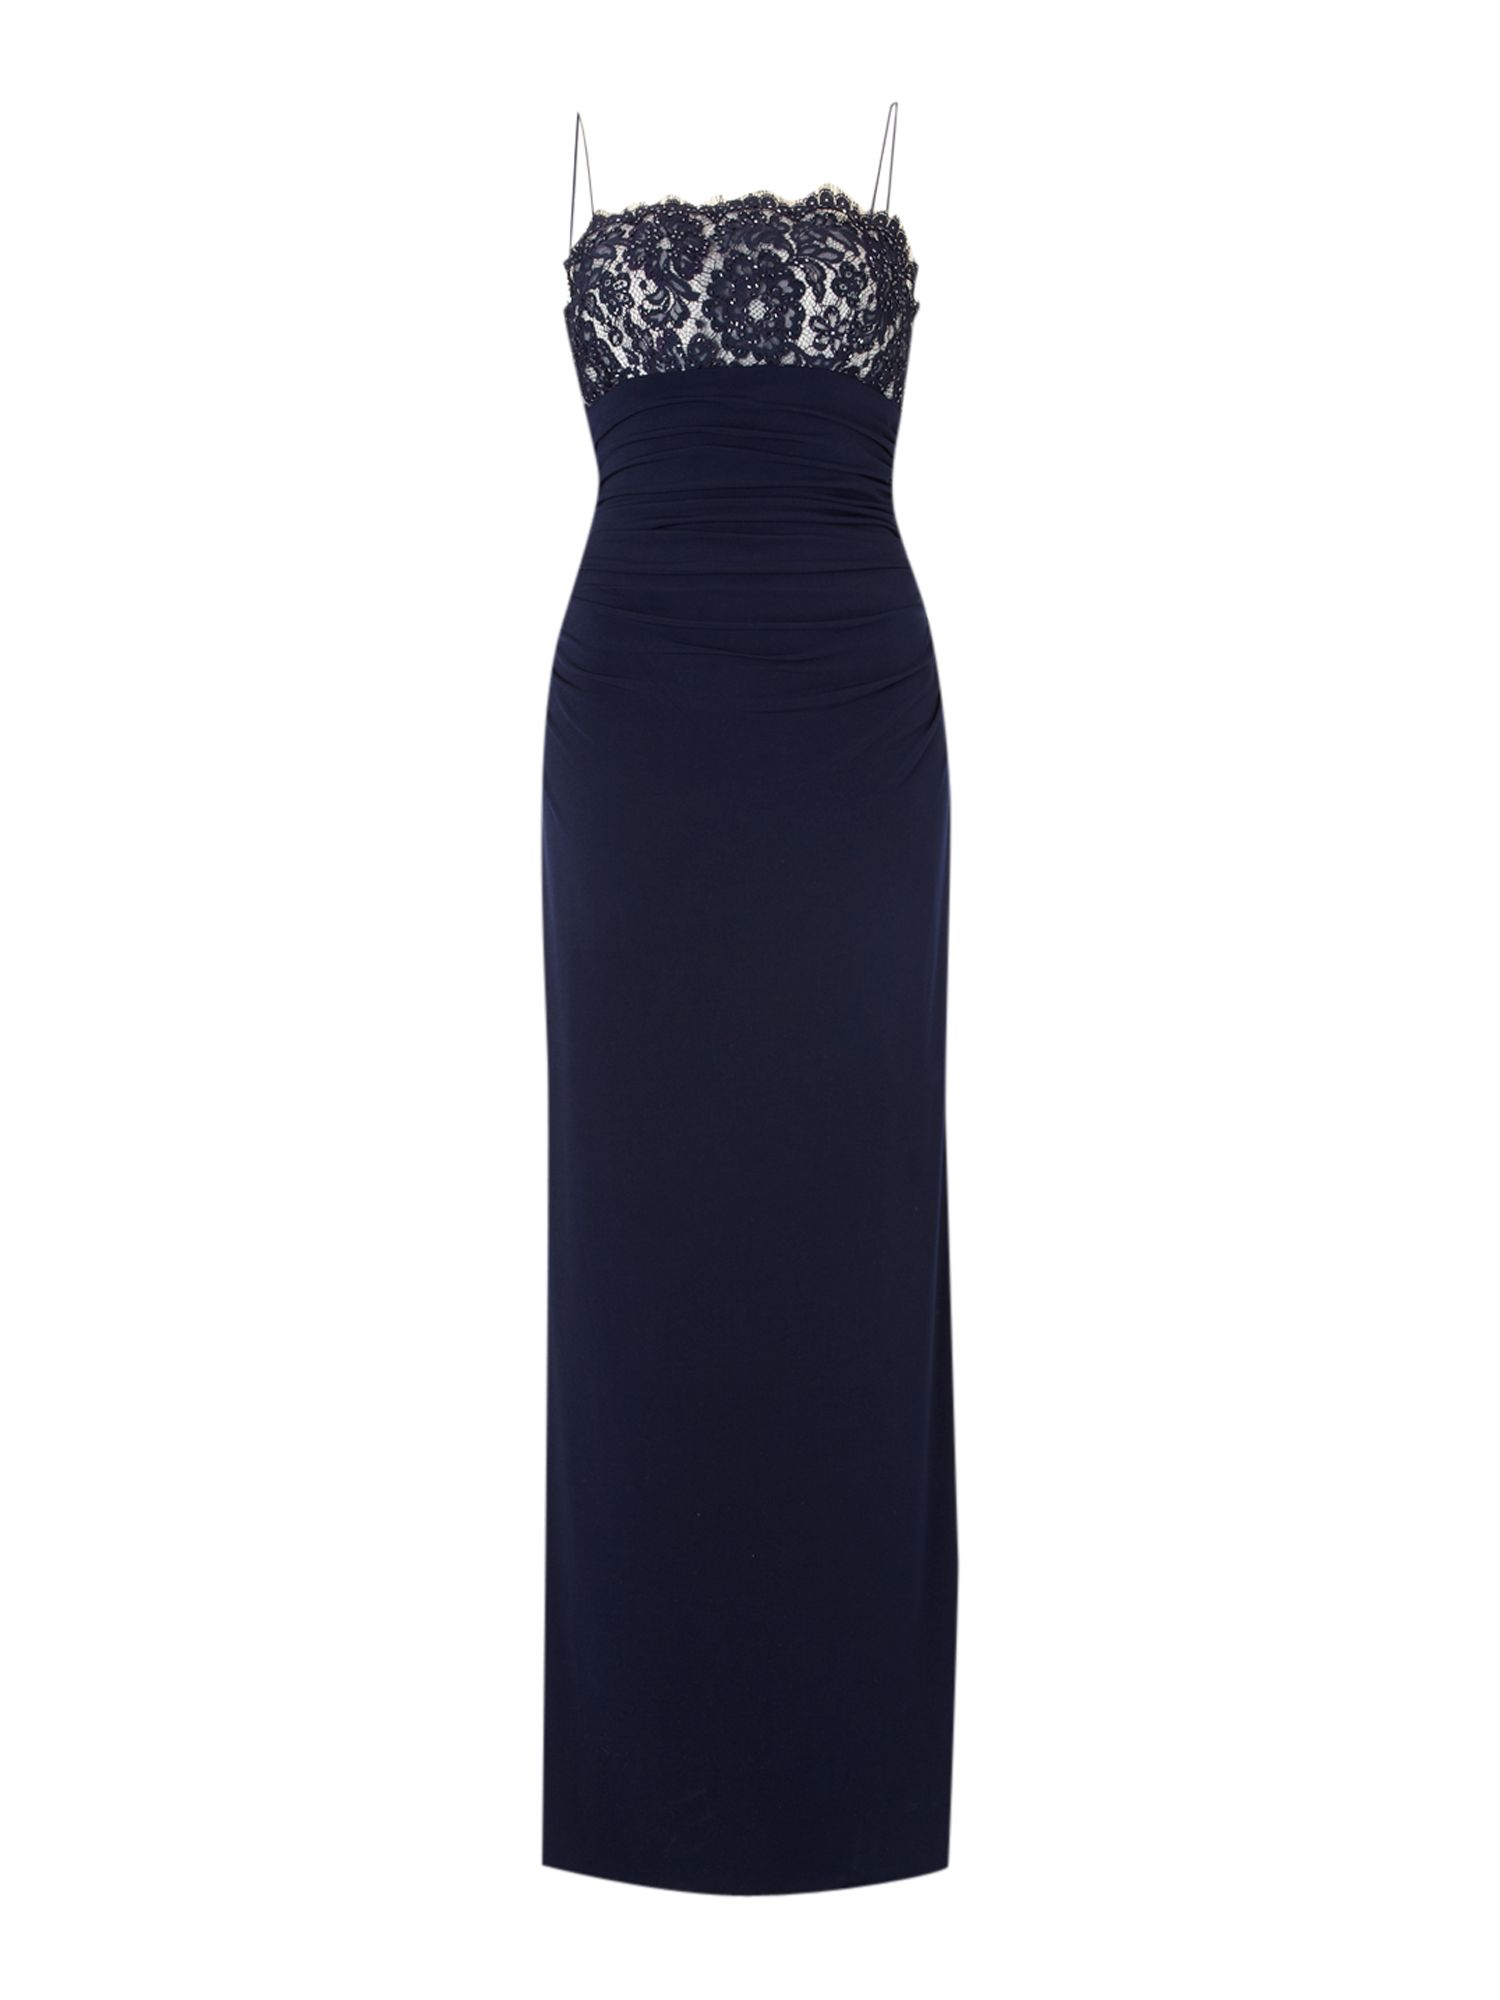 Js Collections Strappy Lace Dress, Navy